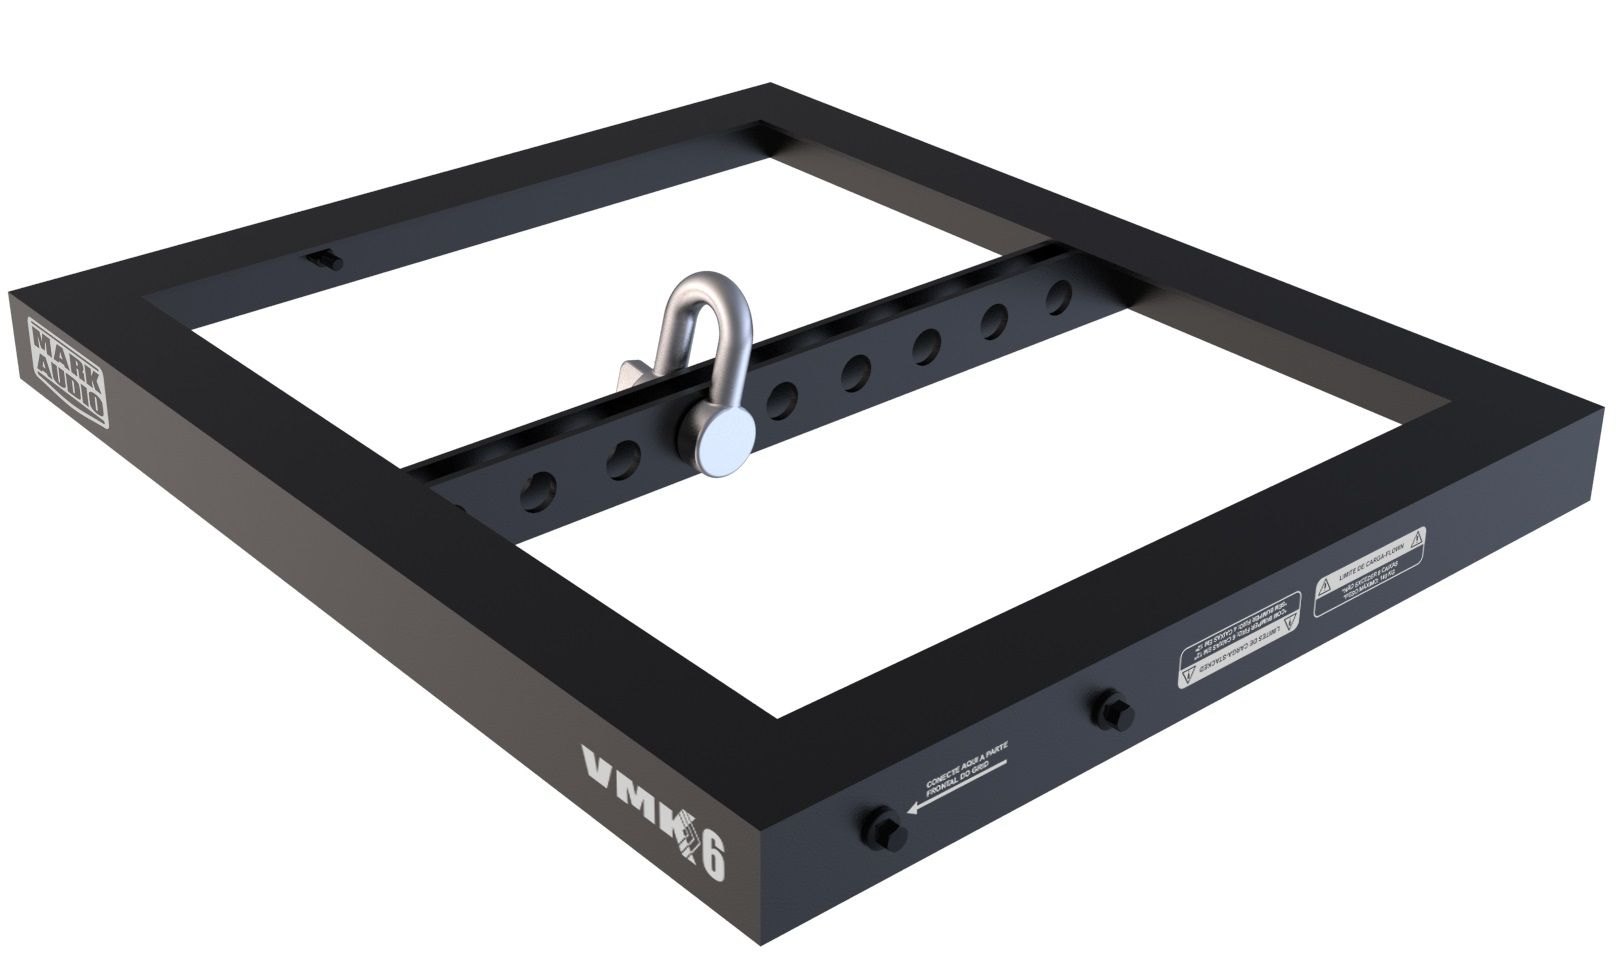 Bumper Mark Audio VMK6 Preto